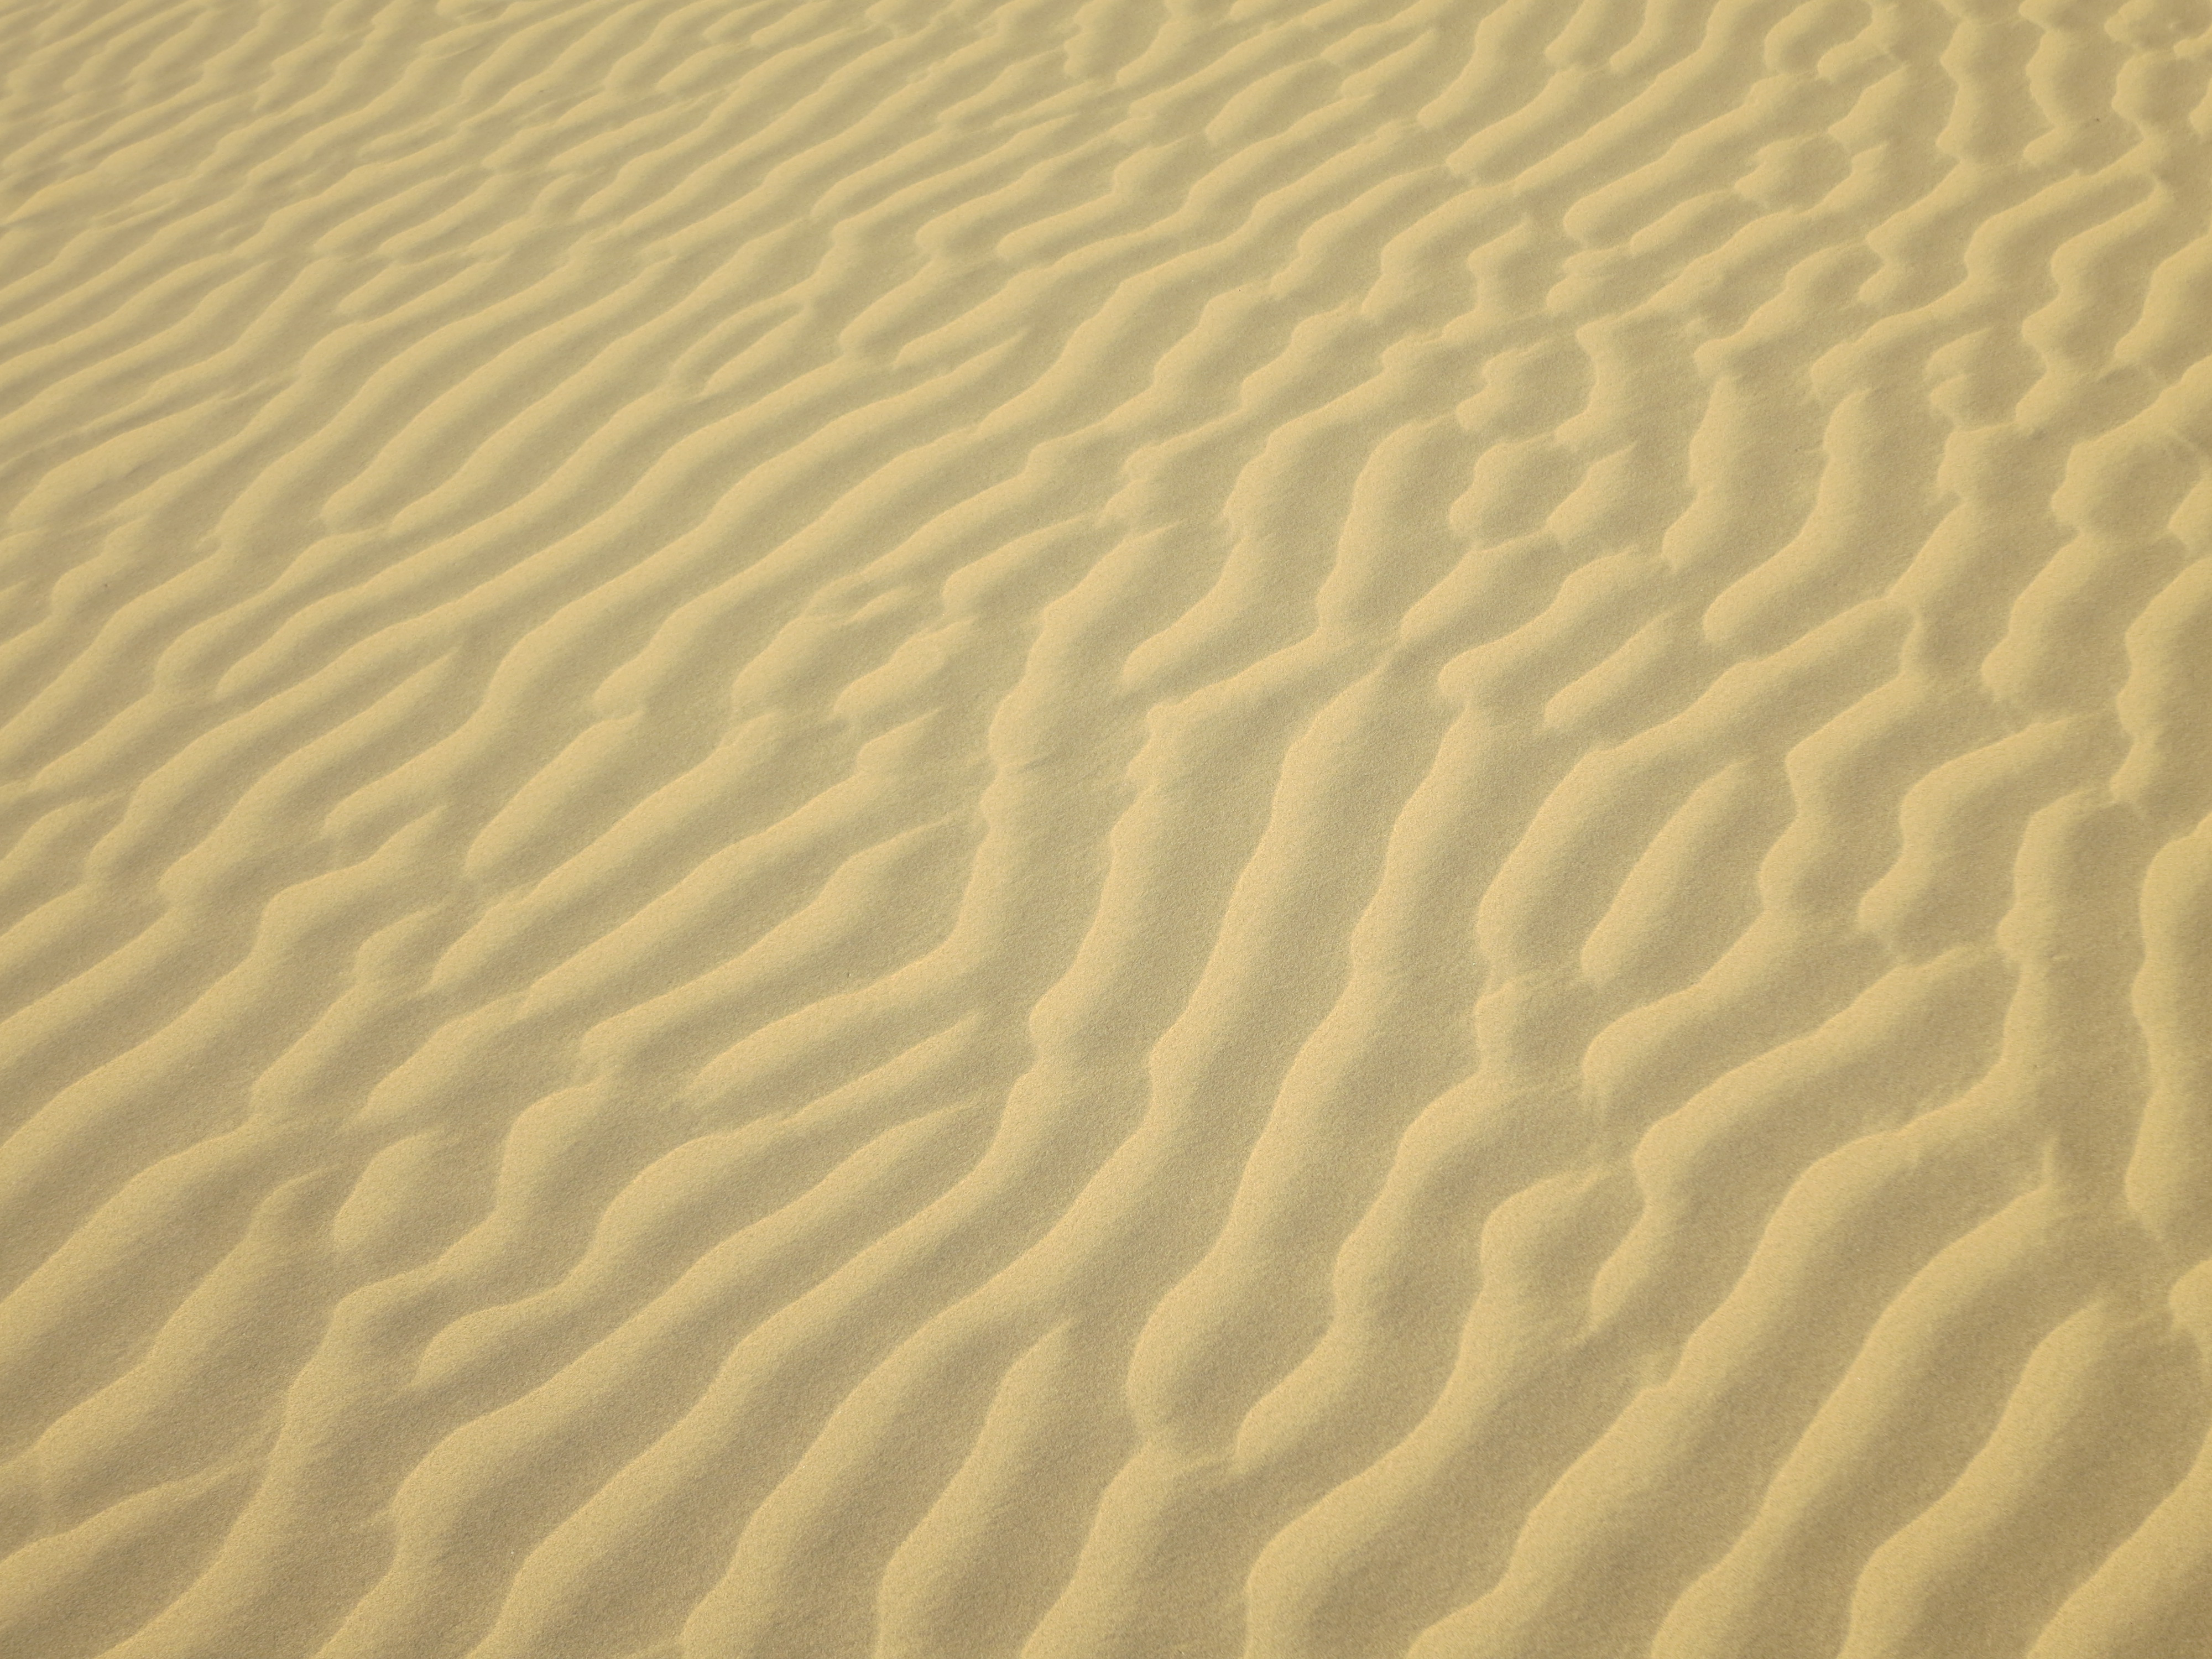 Camel Safaris and Sand Dunes in Jaisalmer | Temporarily Lost